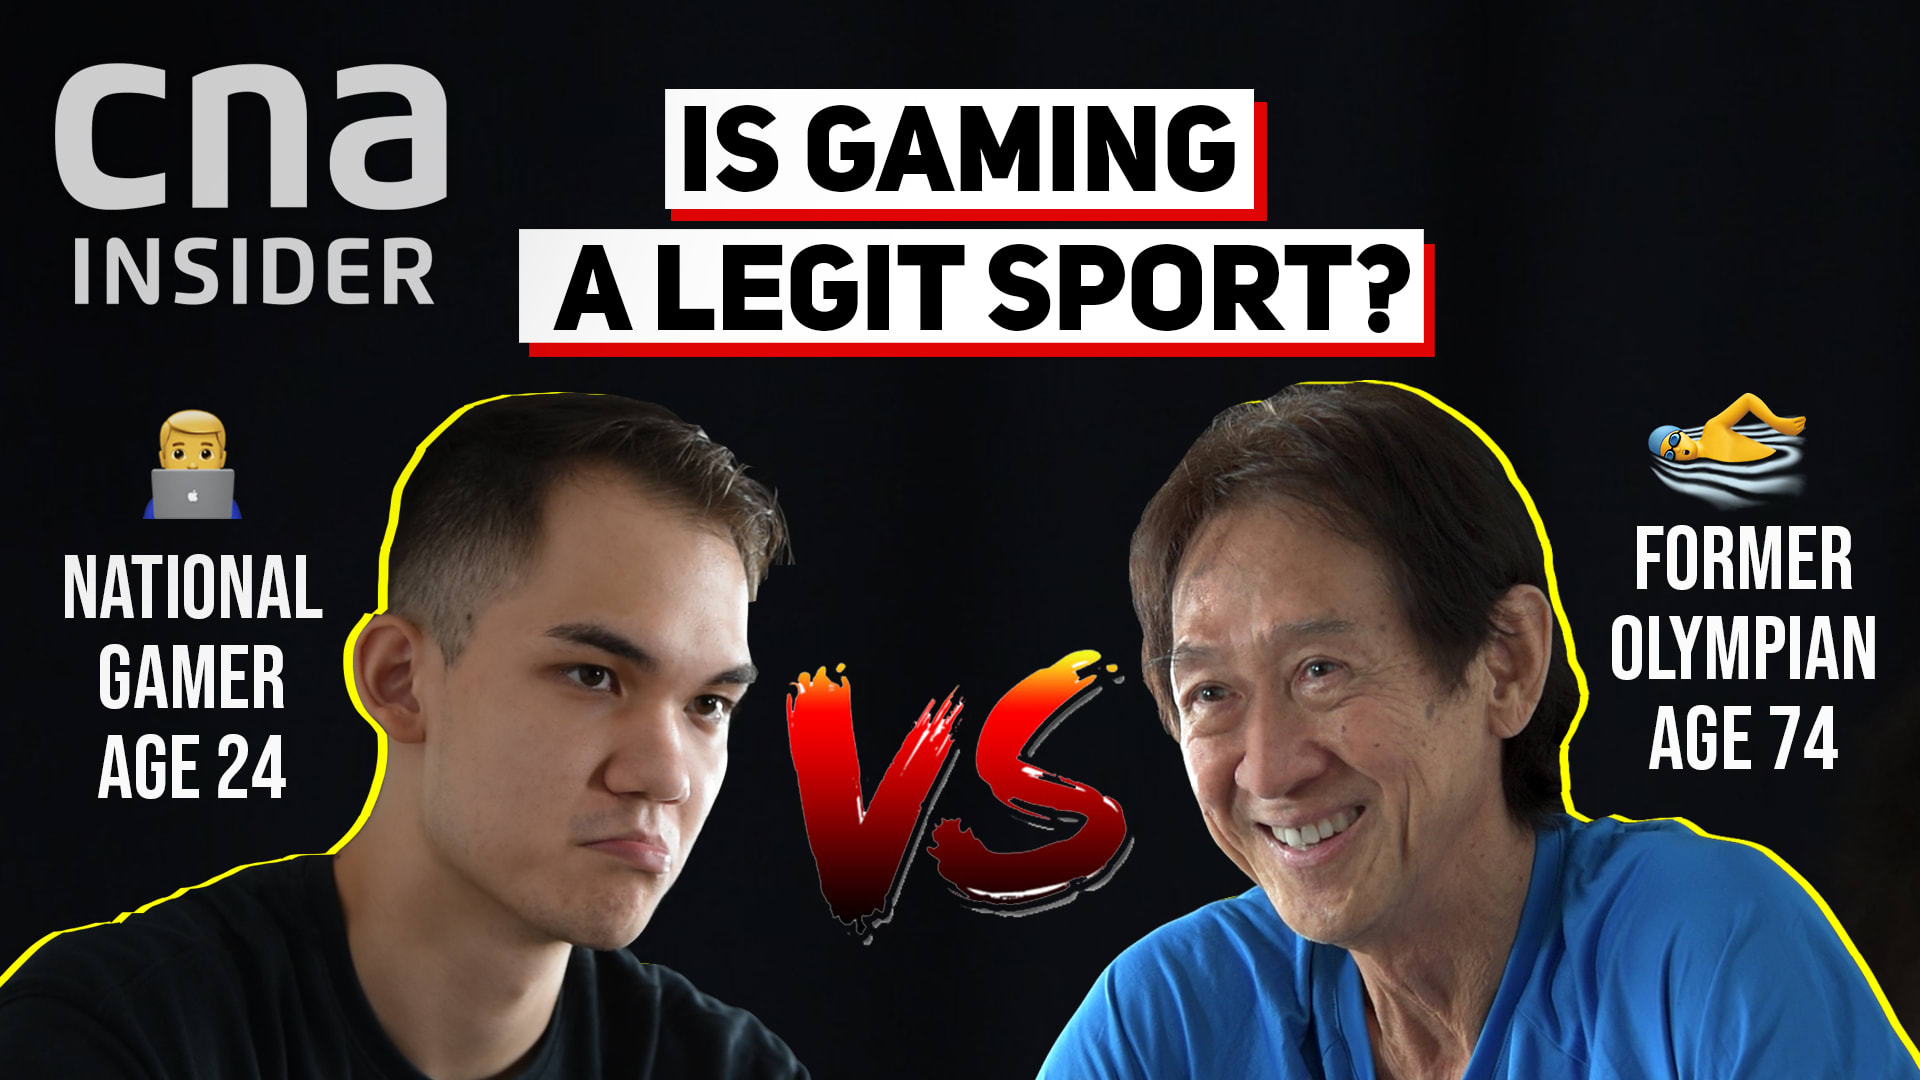 Ex-Olympian vs gamer: Is e-sports a real sport? Should it be in the Olympics?